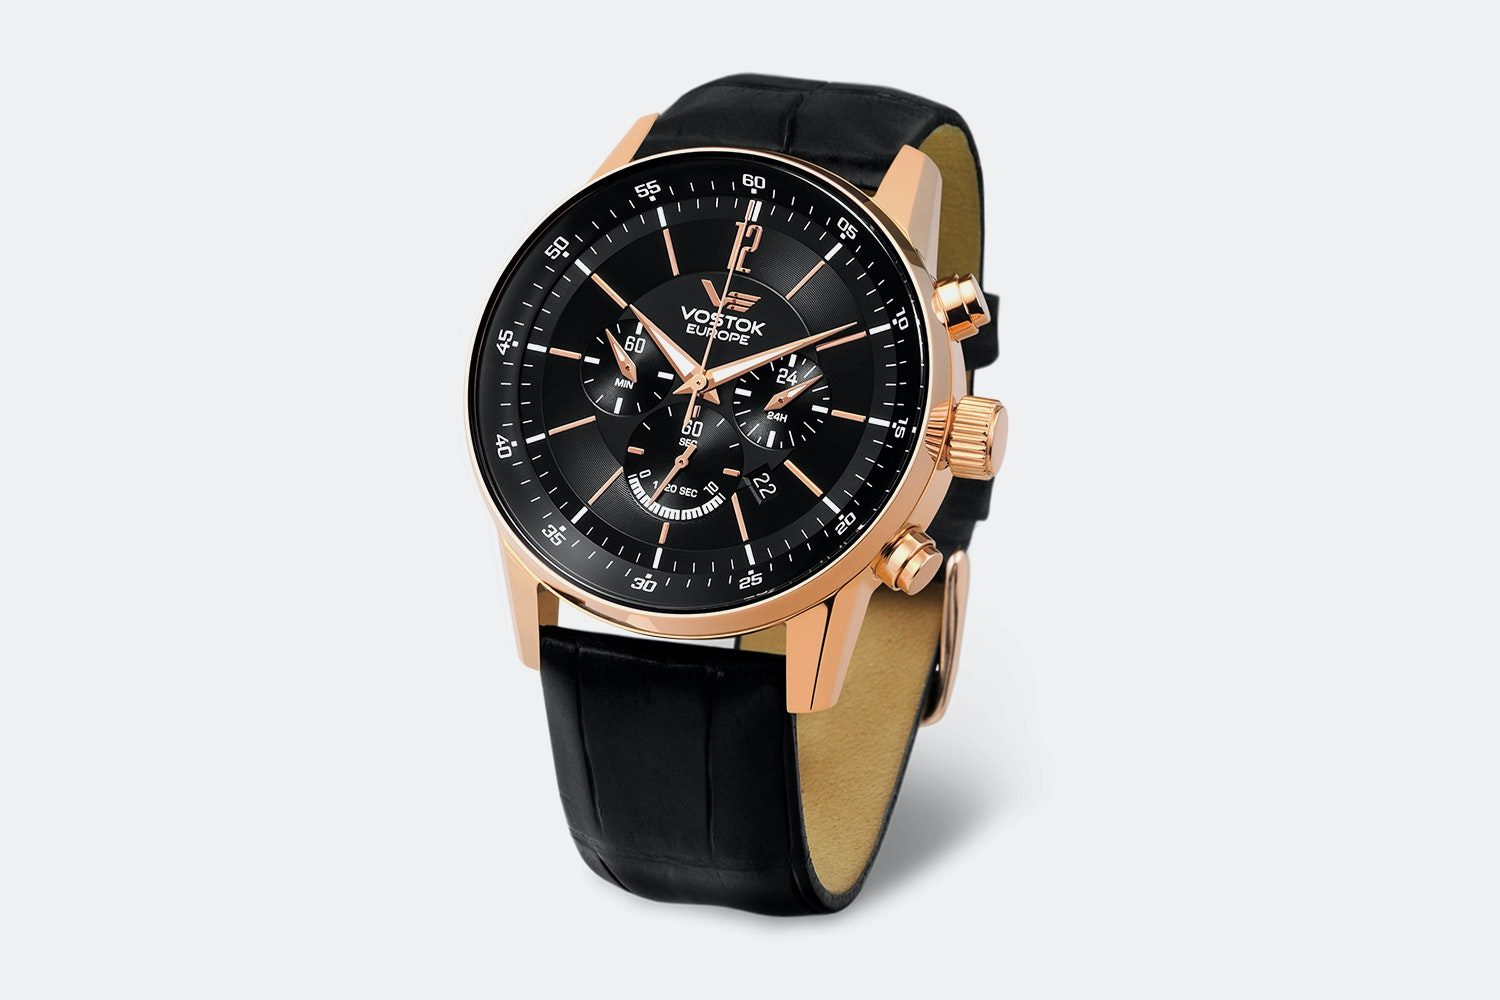 OS22-5619296 | Rose Gold Case, Black Dial, Black Leather Strap, No Numerals